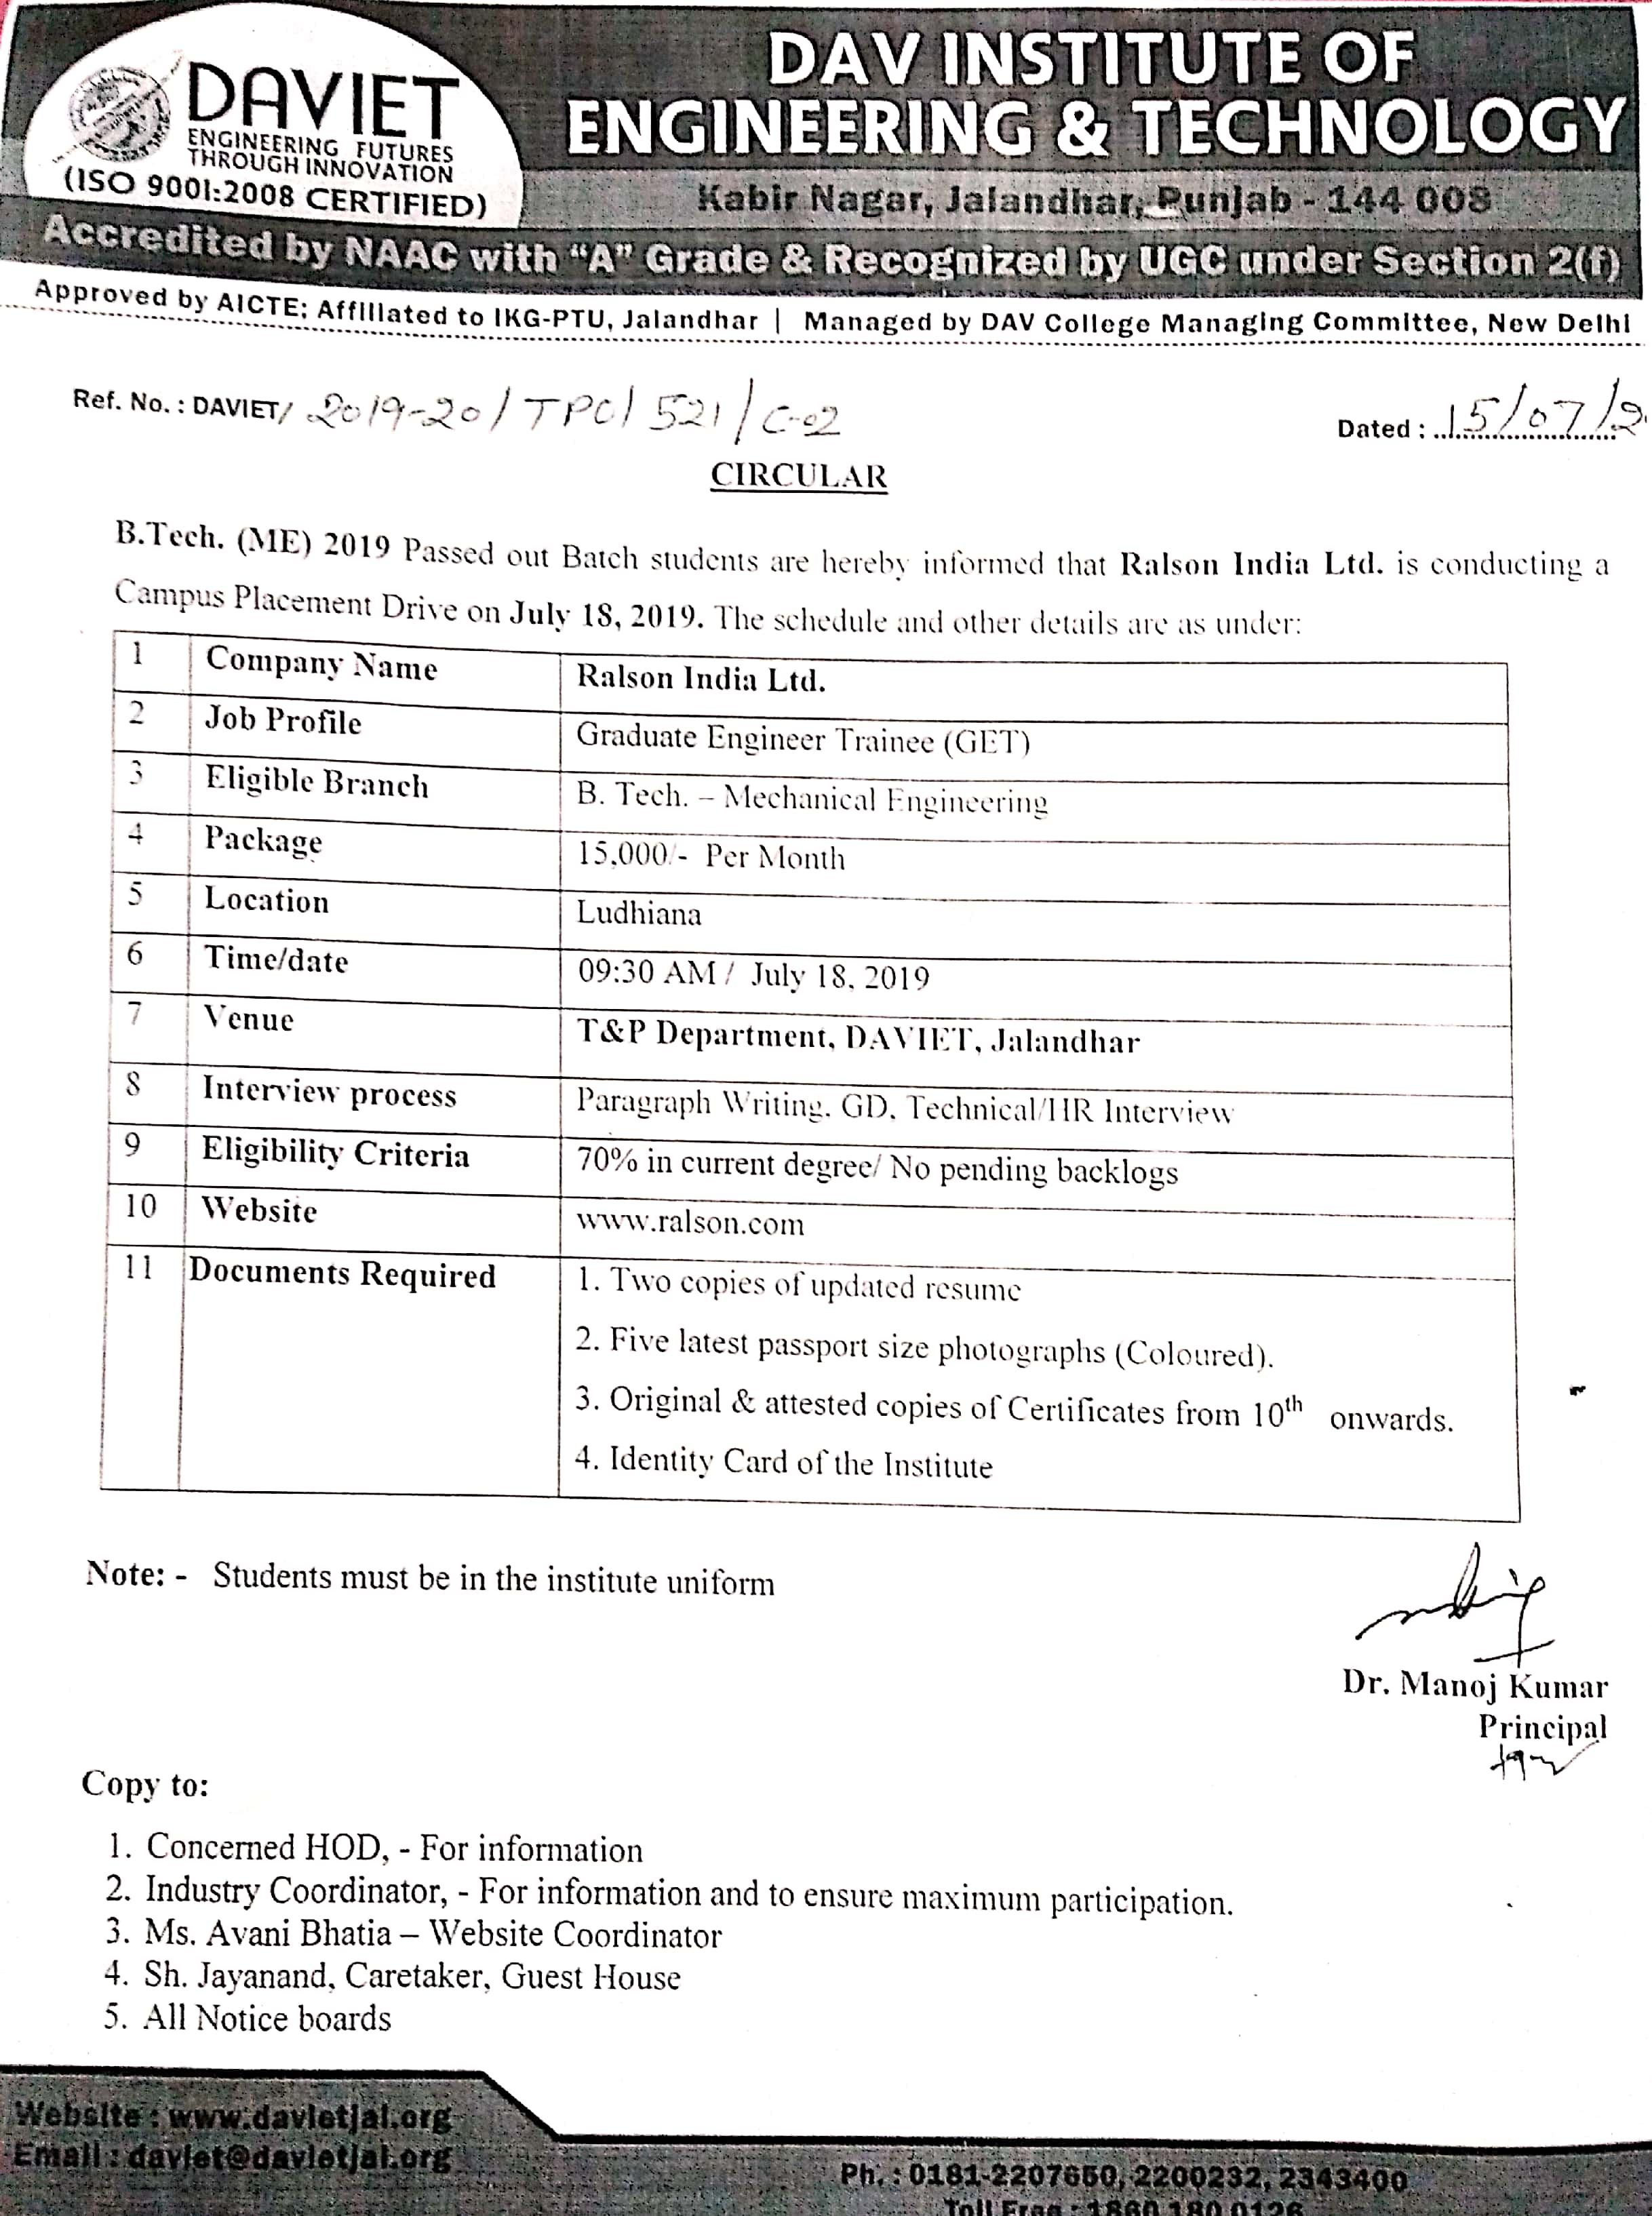 Office Circular for Placement Drive by Ralson India Ltd on 18-07